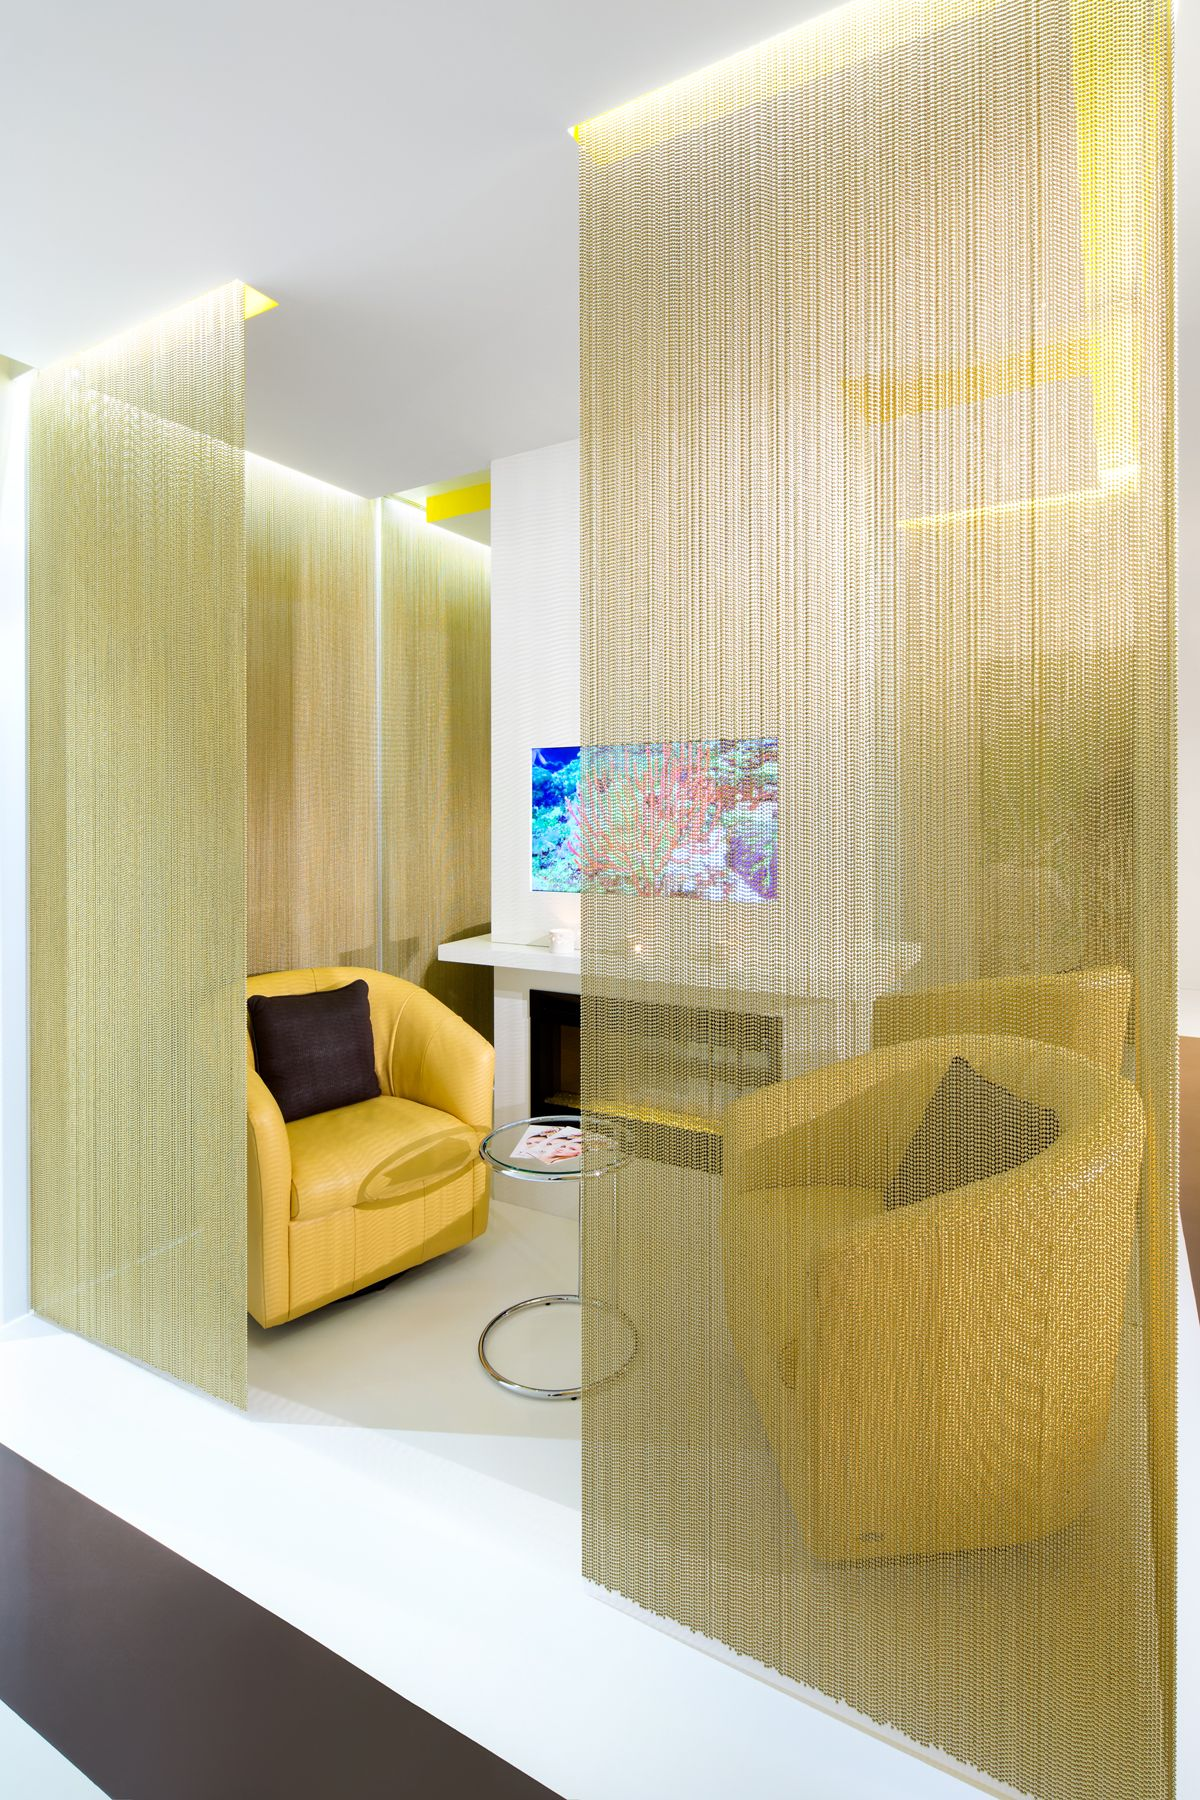 Interesting and luxurious division of space with gold curtain wellness and spa interior design tumbleweed interiors healthy harmonious sustainable